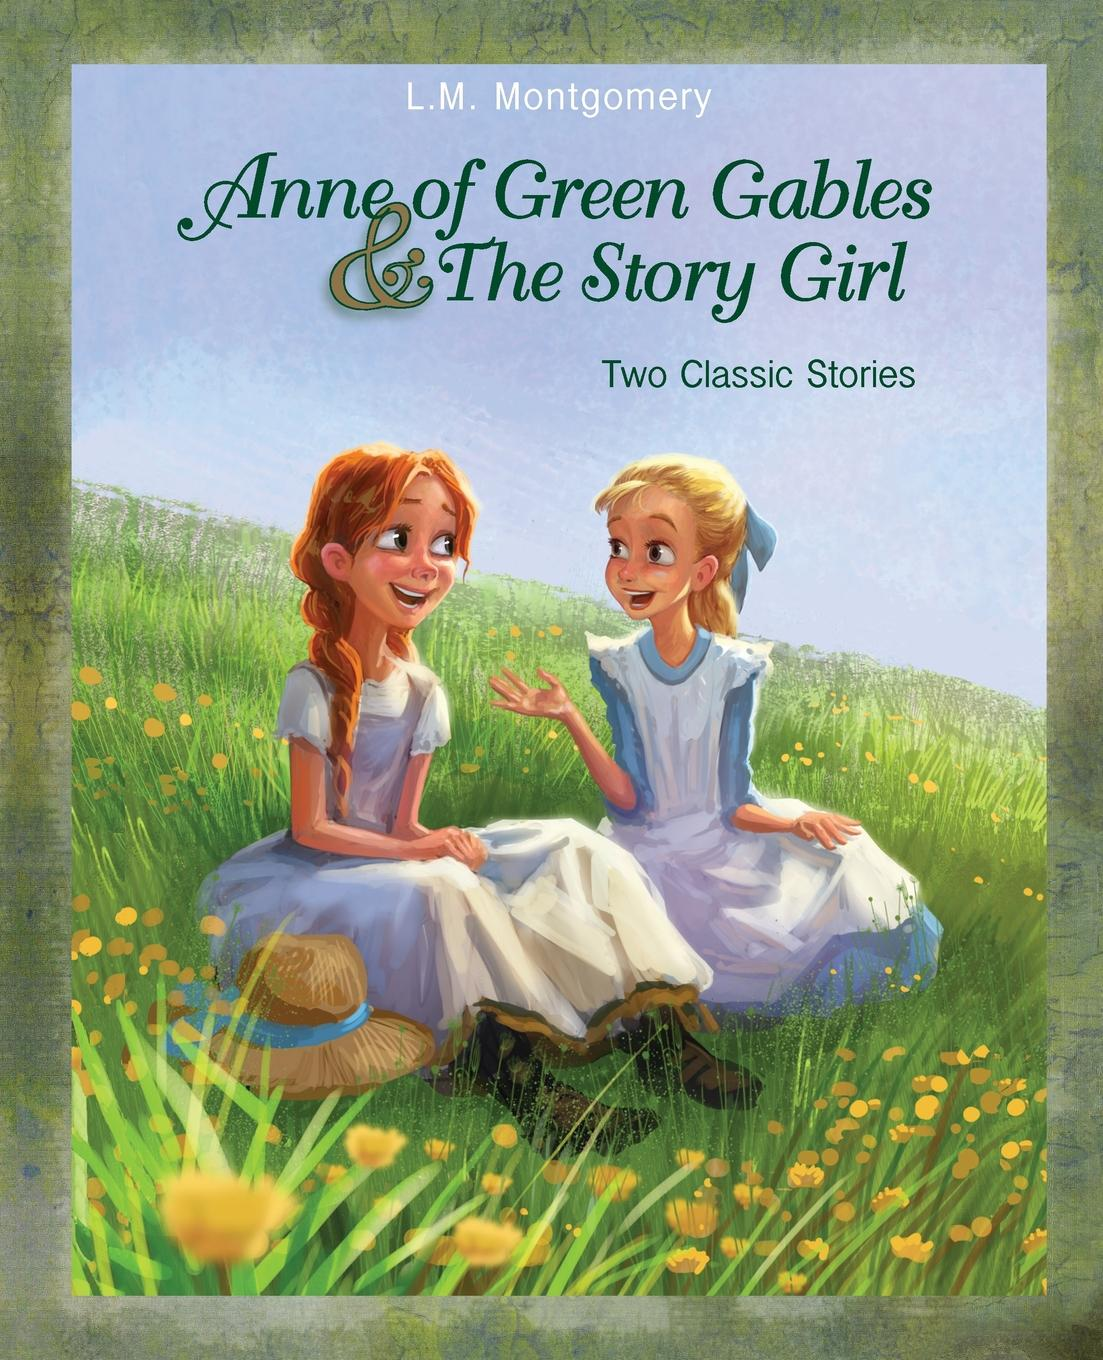 лучшая цена L. M. Montgomery Anne of Green Gables and The Story Girl